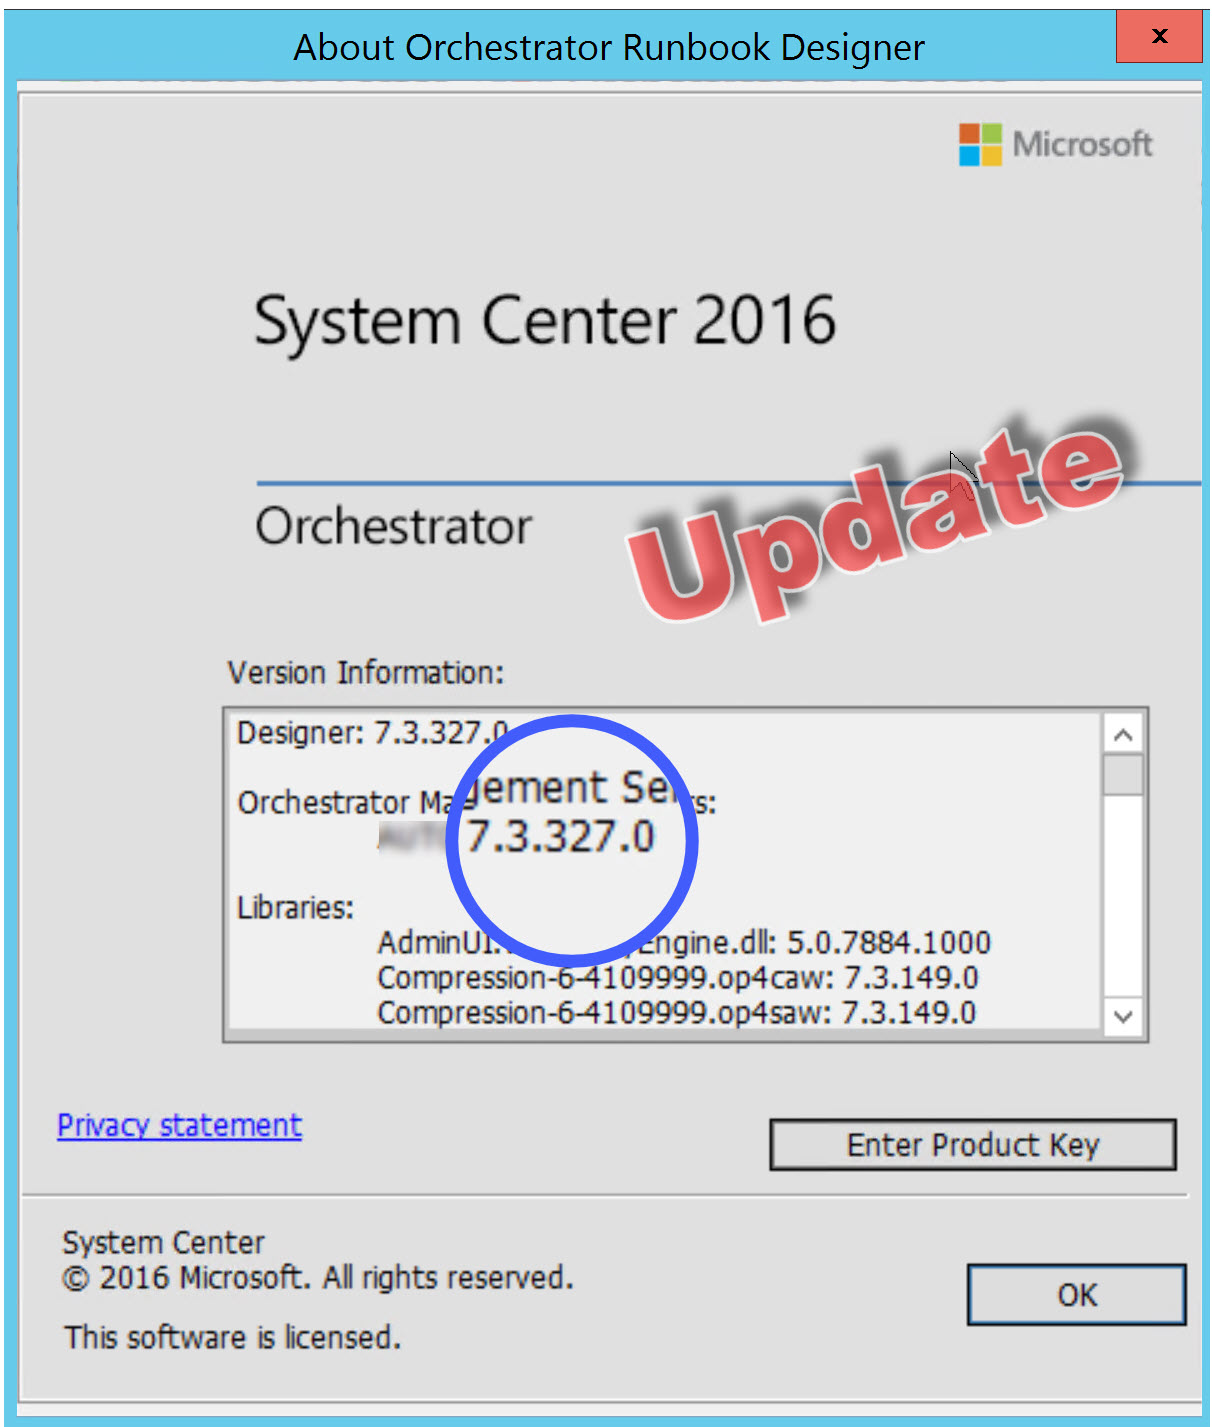 Update Rollup 8 for System Center 2016 Orchestrator has been released